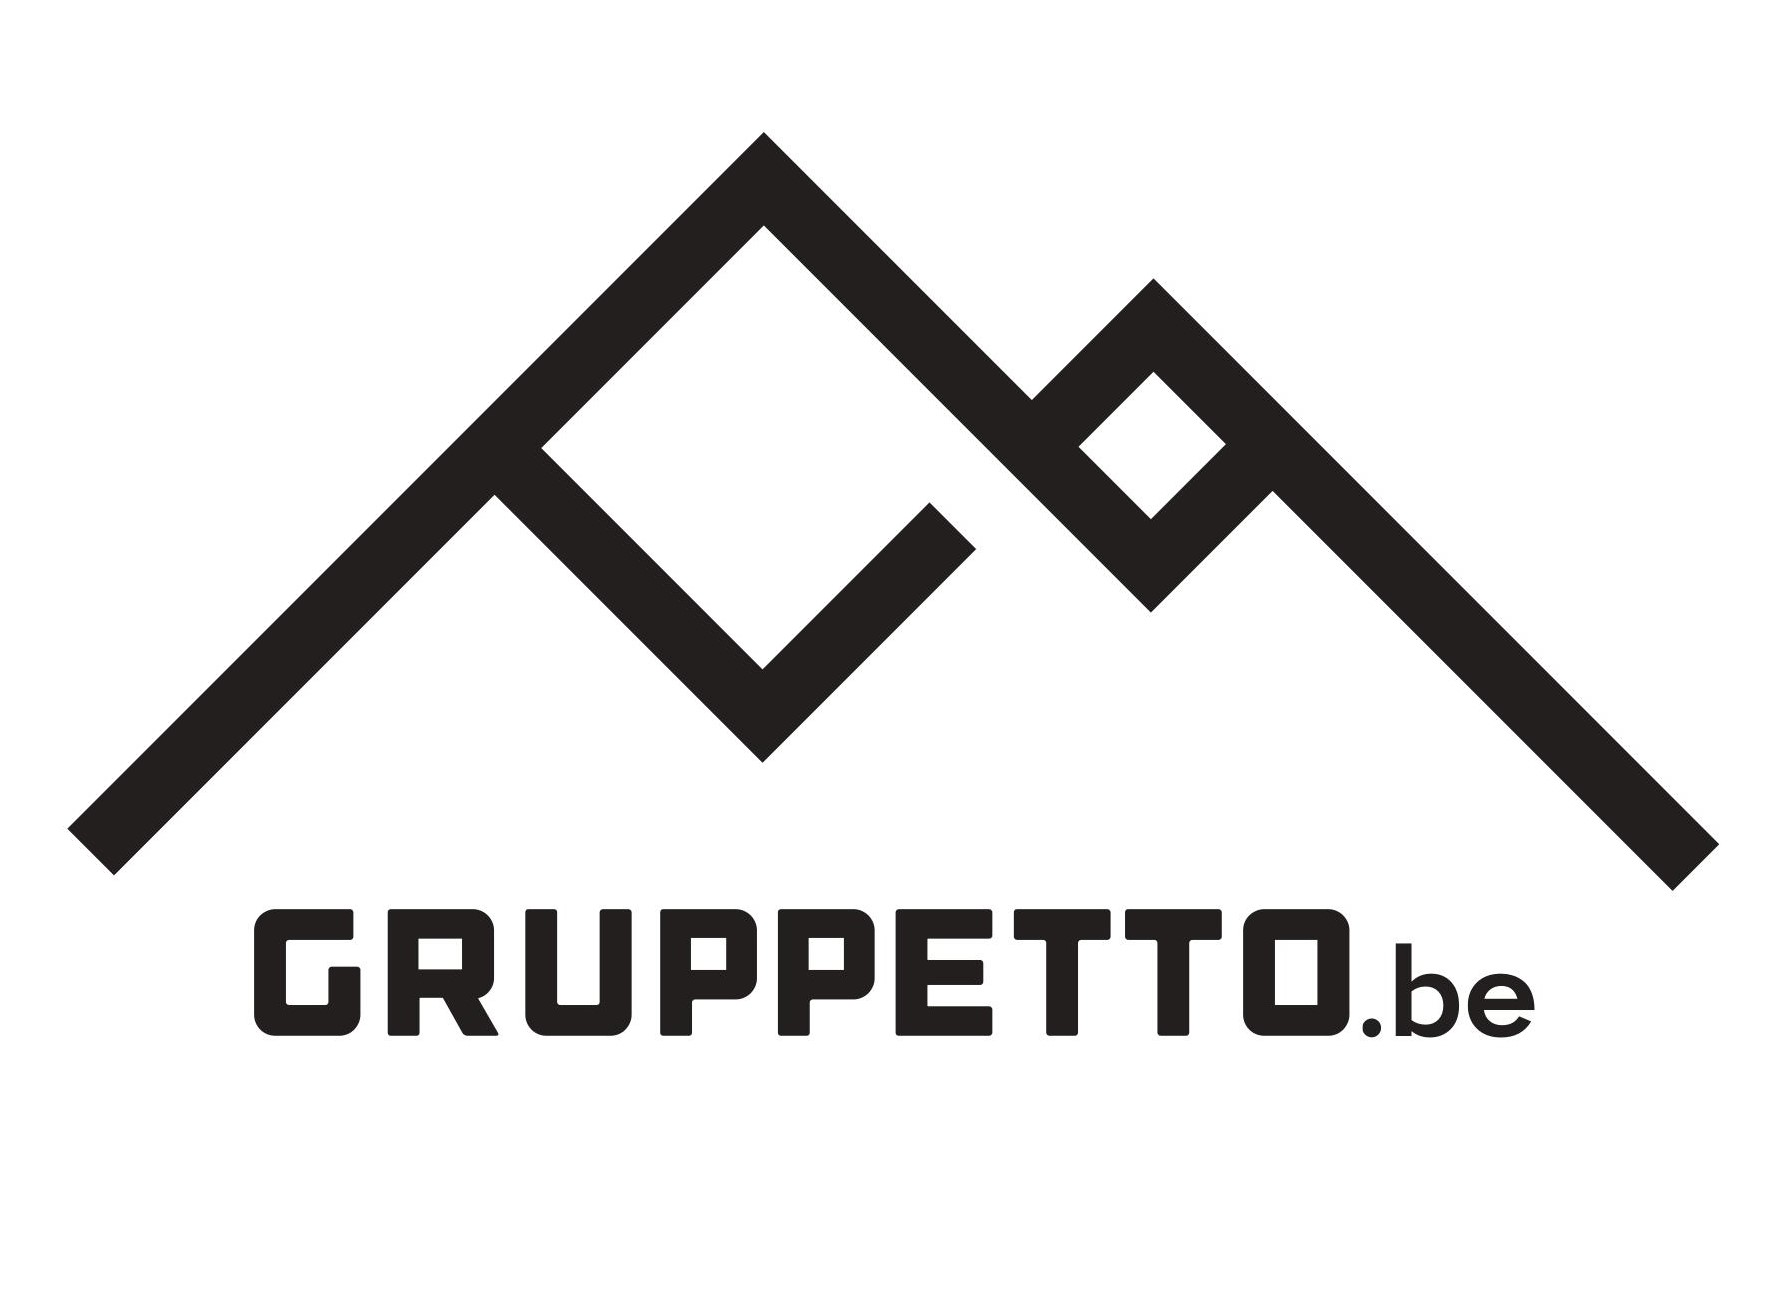 Gruppetto